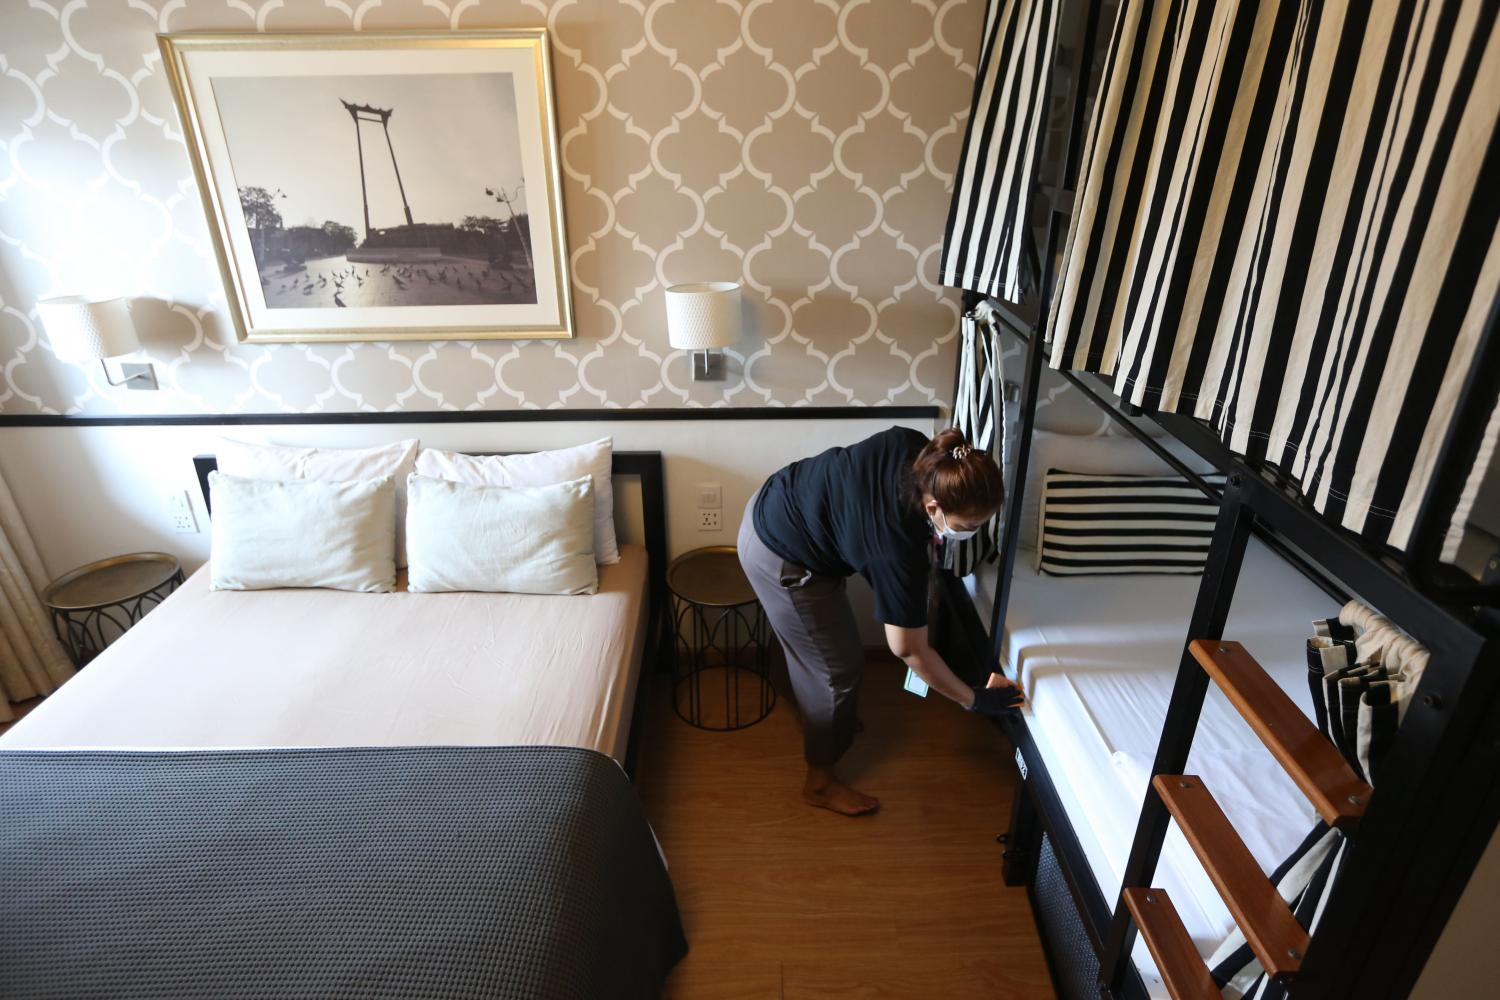 A cleaner disinfects a hotel room in central Bangkok. WICHAN CHAROENKIATPAKUL